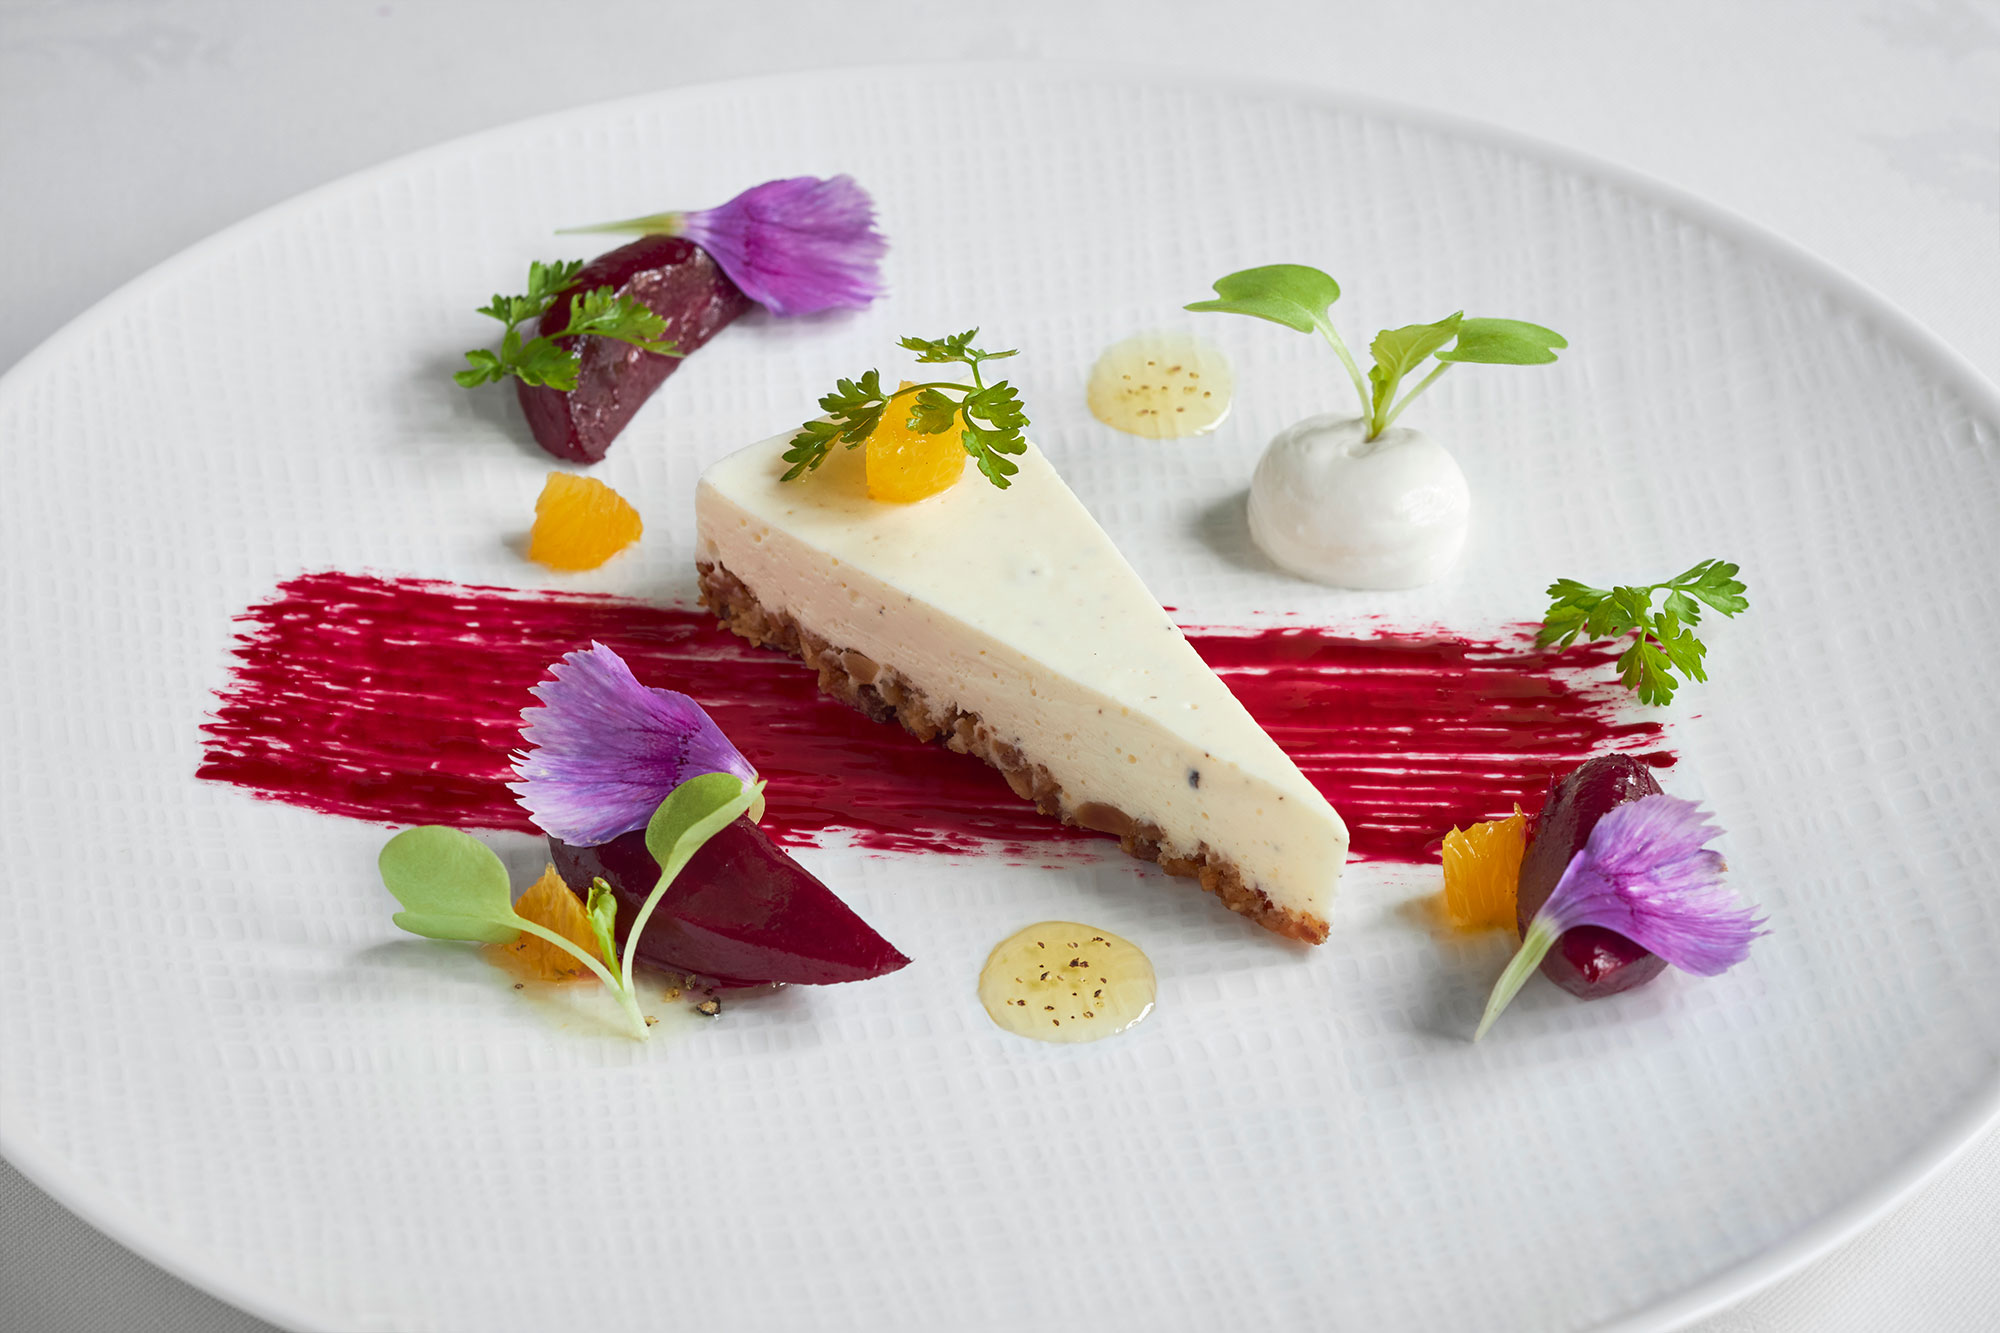 Dessert displayed on a white plate with colorful garnishes of vibrant purples, oranges and greens.